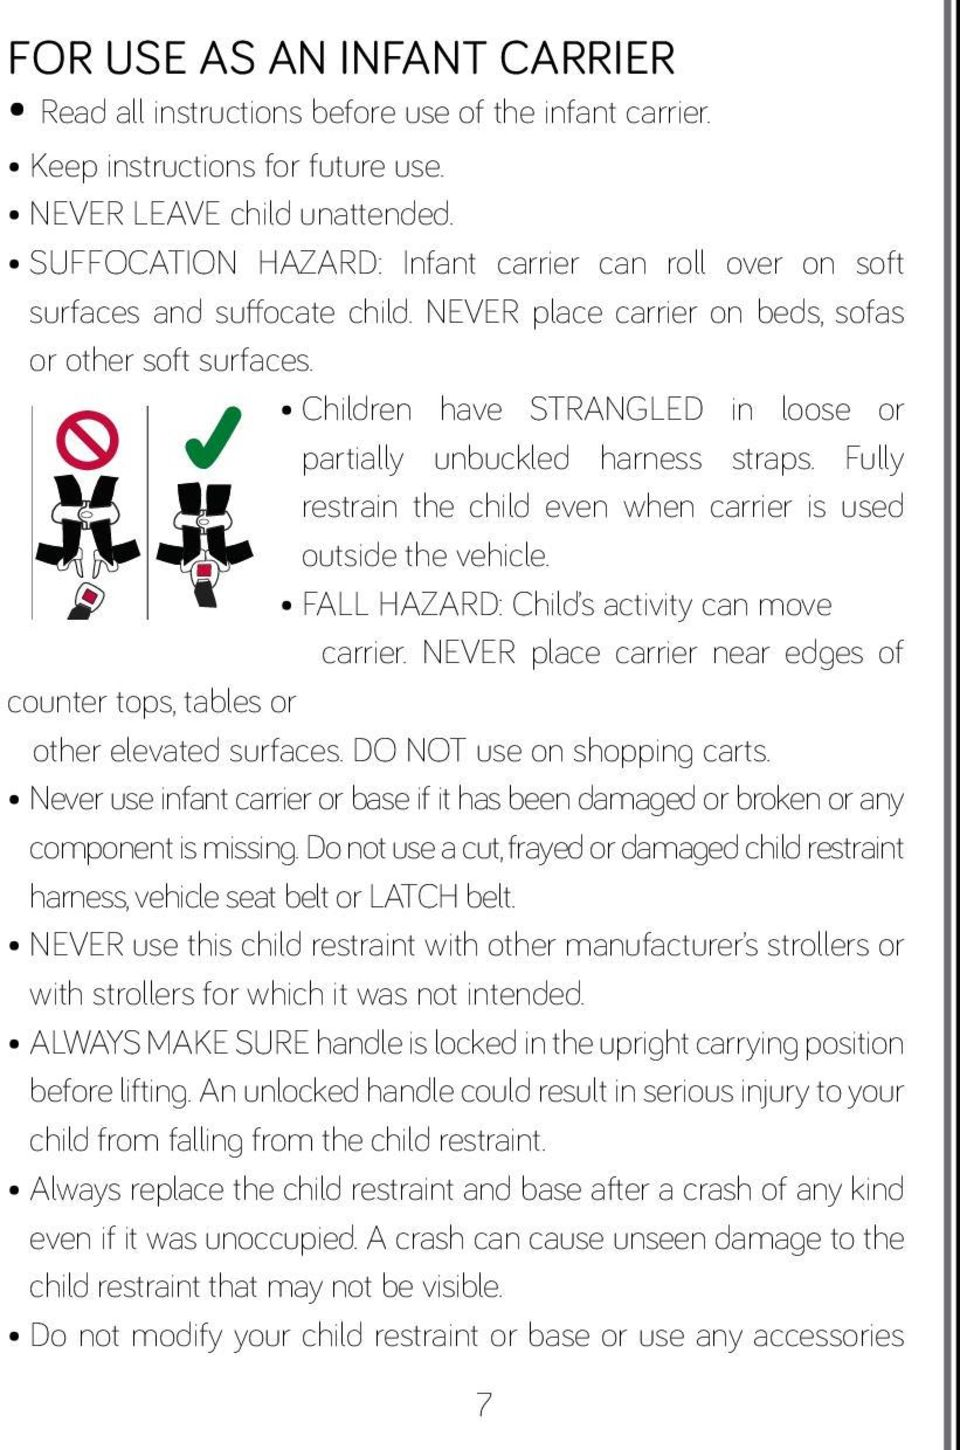 Children have STRANGLED in loose or partially unbuckled harness straps. Fully restrain the child even when carrier is used outside the vehicle. FALL HAZARD: Child s activity can move carrier.